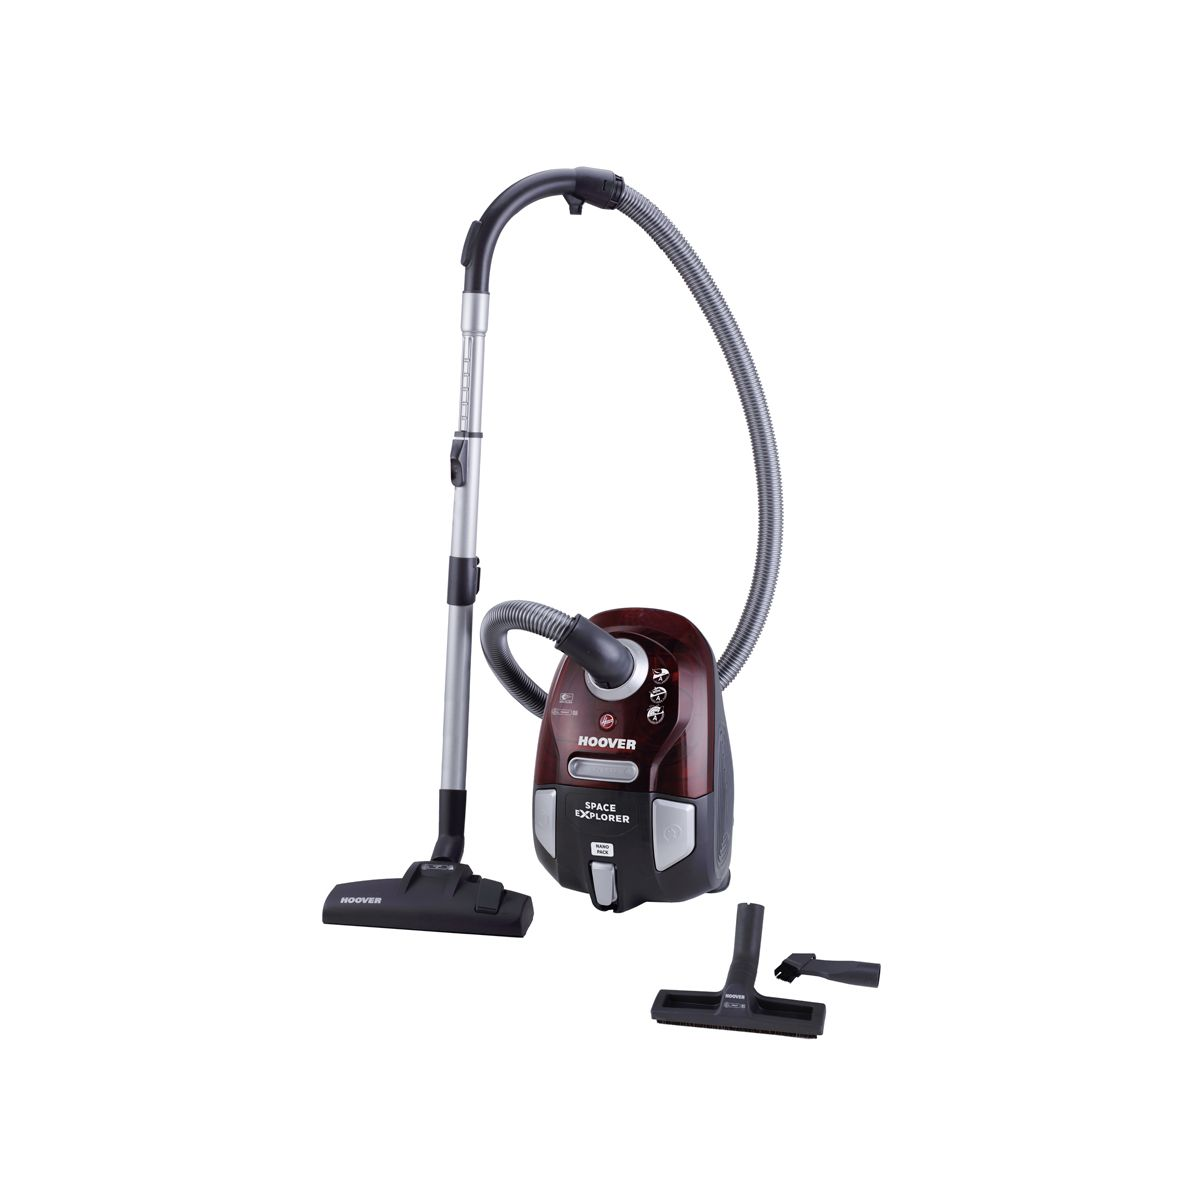 Aspirateur sans sac HOOVER SL71_SL60 SpaceExplorer